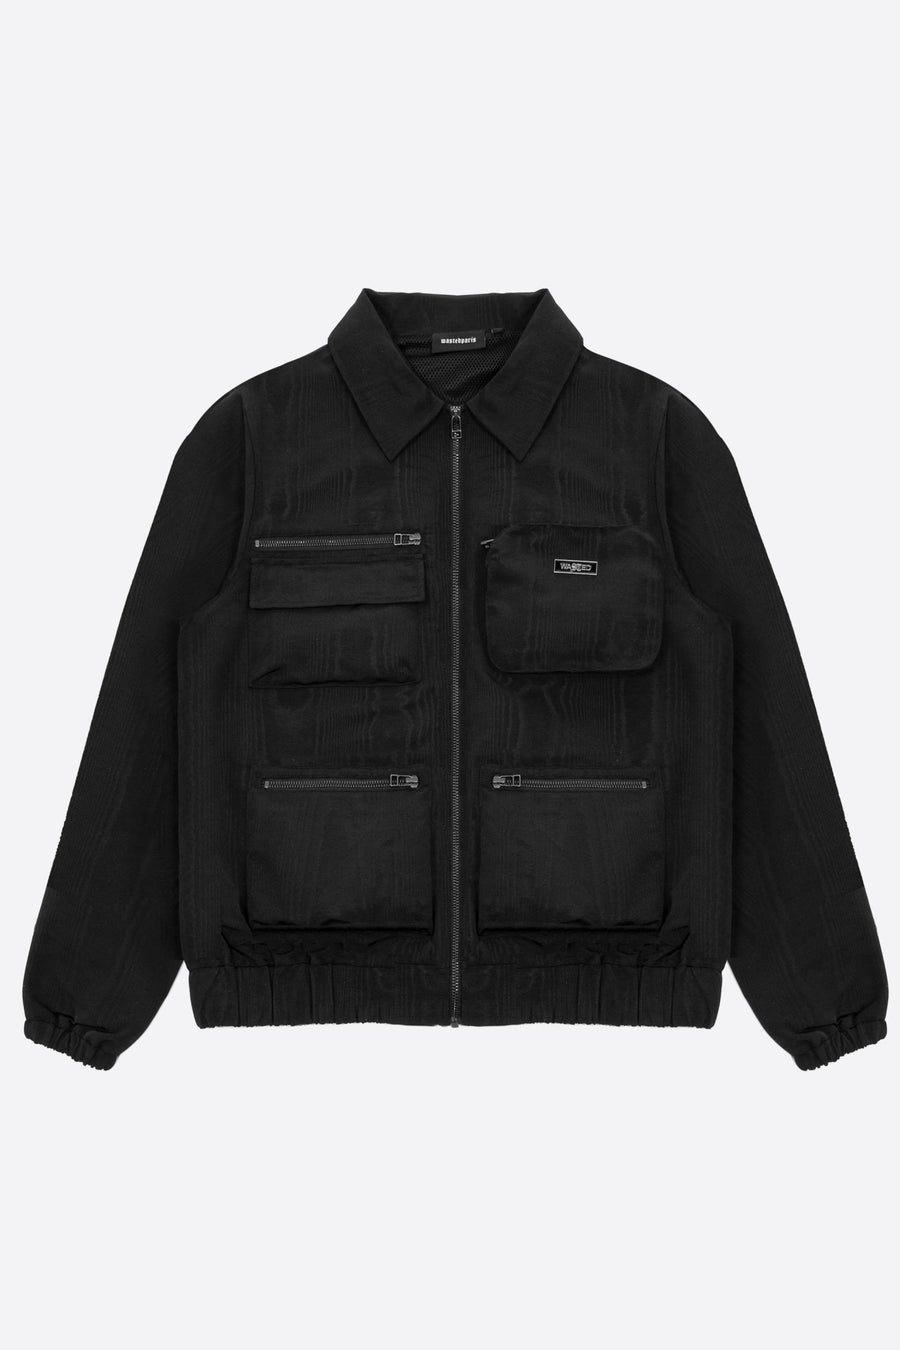 Veste Basswood Noire - WASTED PARIS